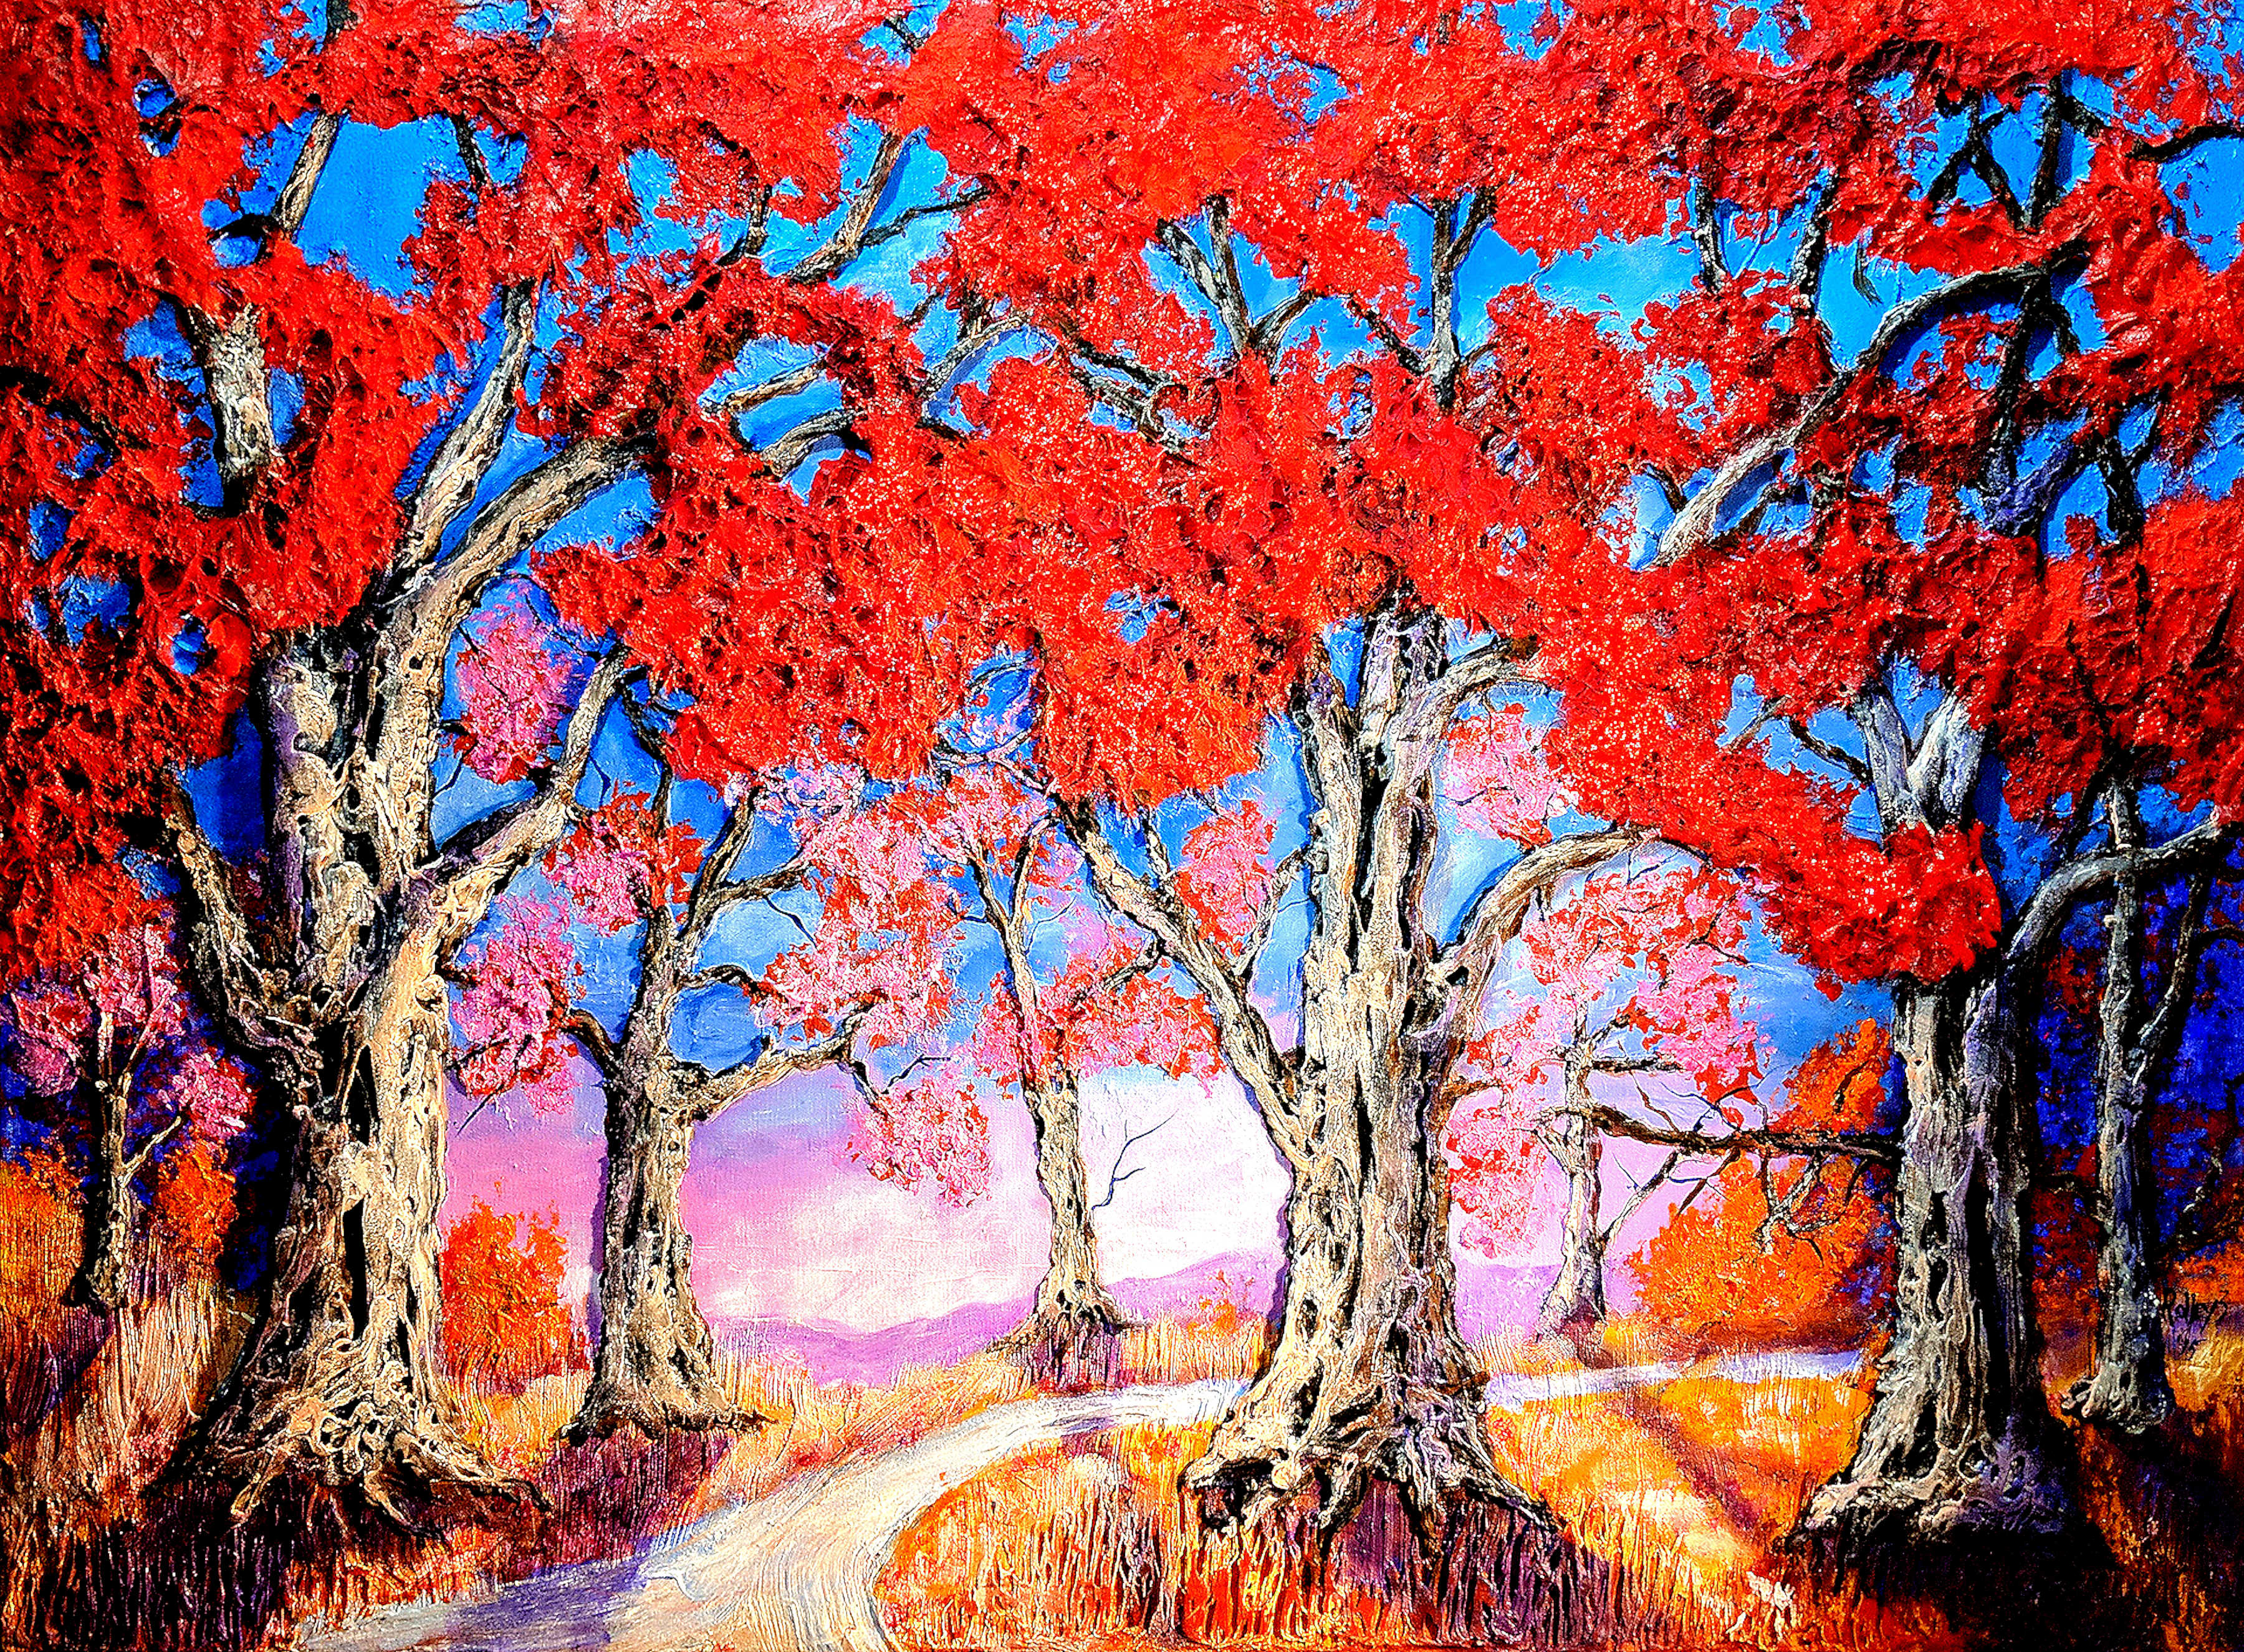 FALL PASTELS     30x40  $700   HIGHLIGHTED WITH GLOW IN DARK LUMINESCENT PAINT